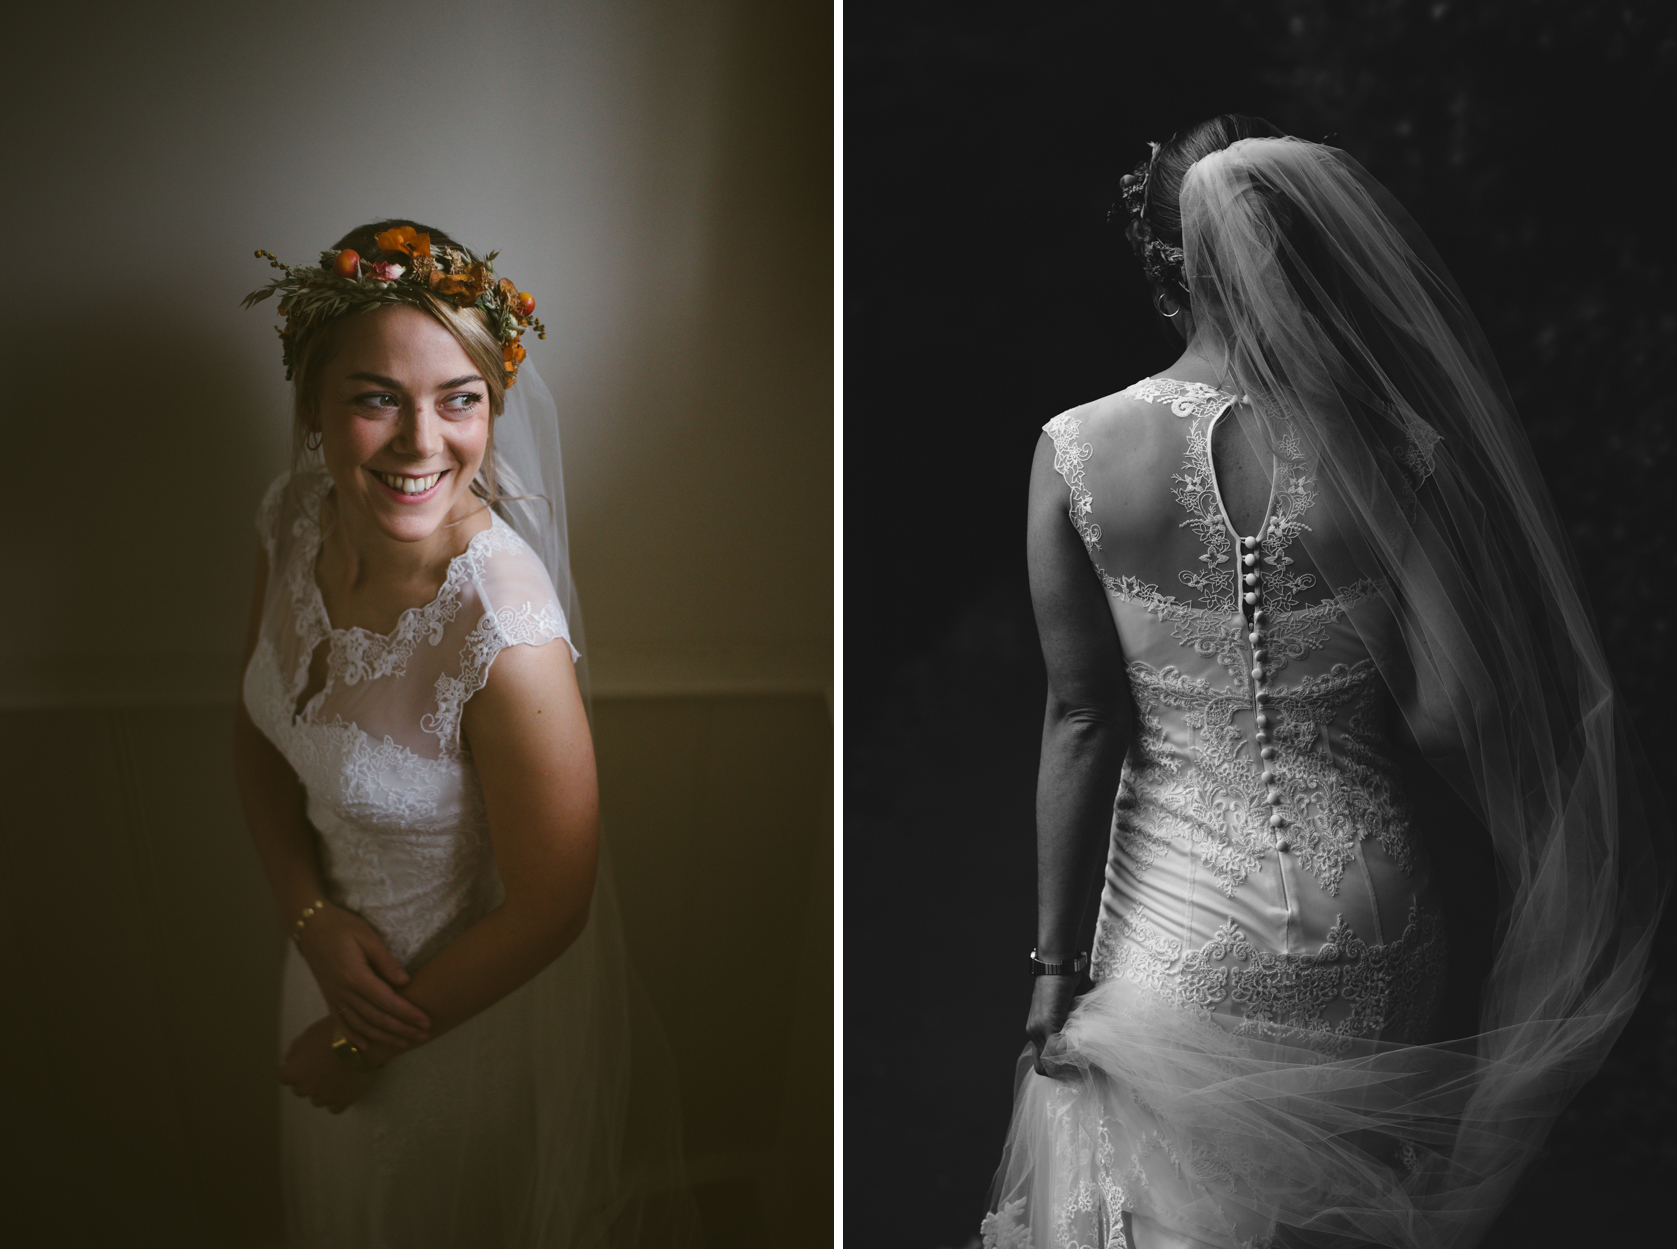 1_Lisa & Christy Malmesbury Wiltshire Documentary Wedding Photographer-160.jpg